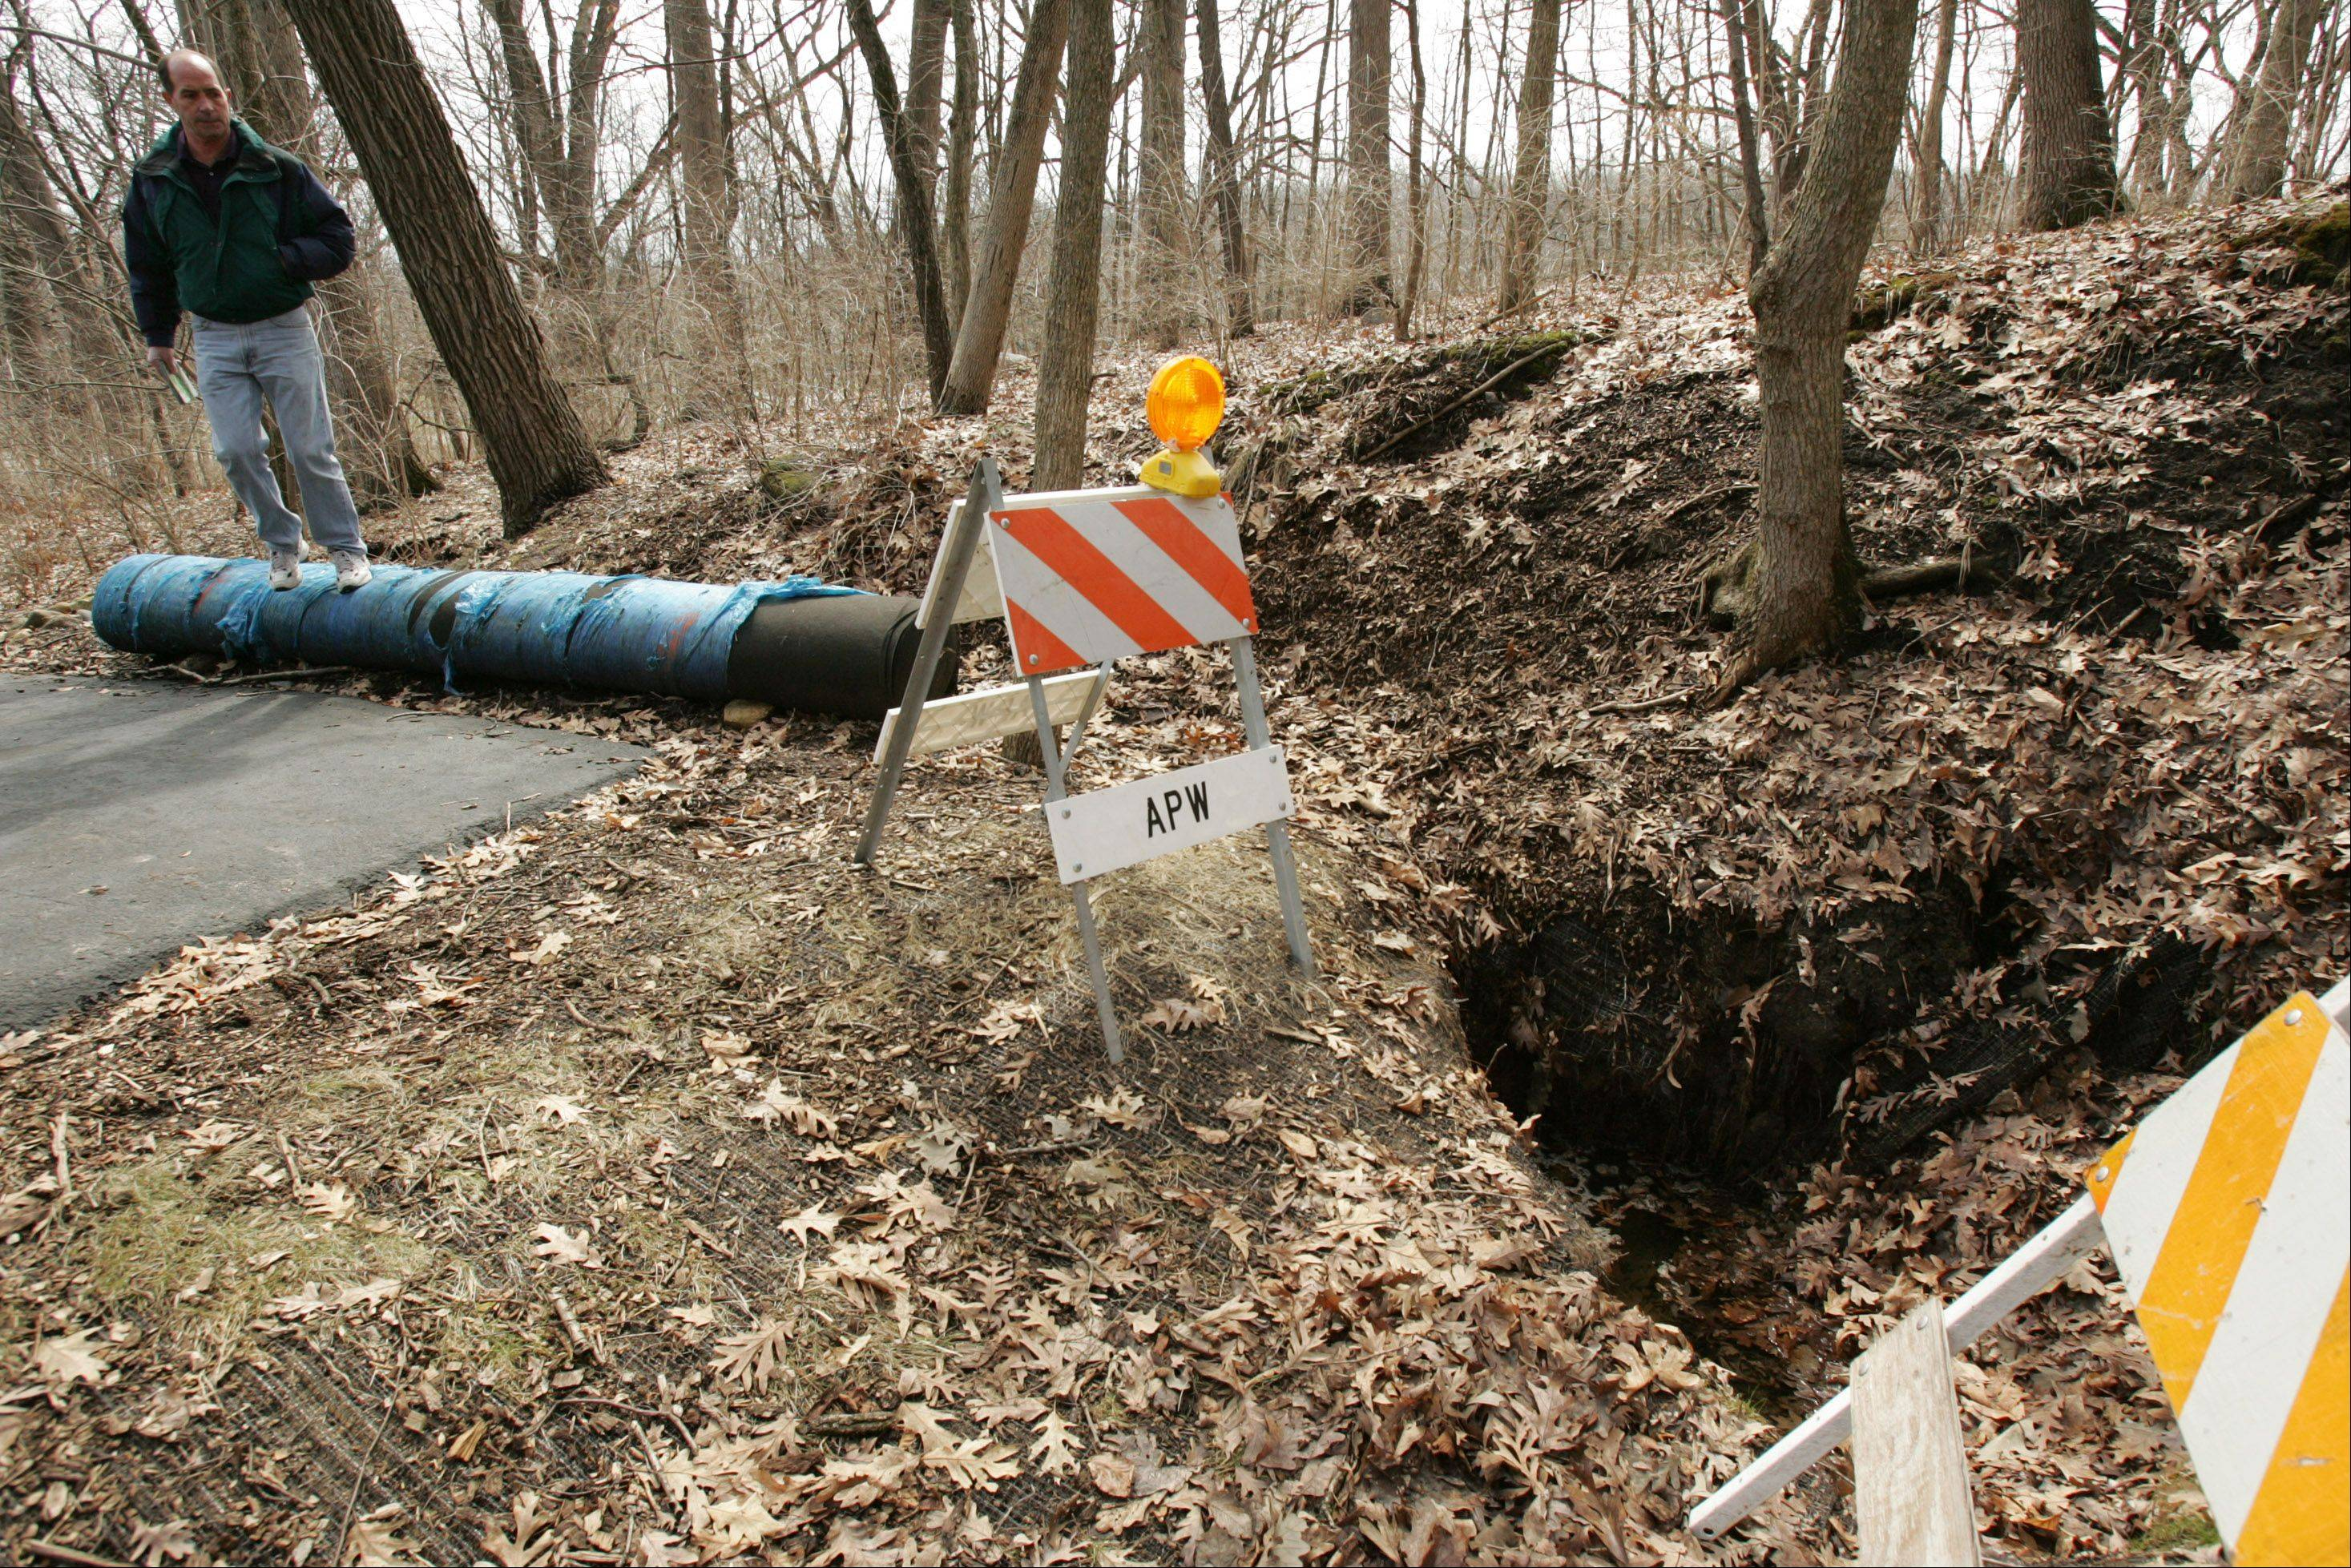 An 8-foot-by-8-foot sinkhole appeared on the property of Algonquin resident Tom Gamoe in 2008.